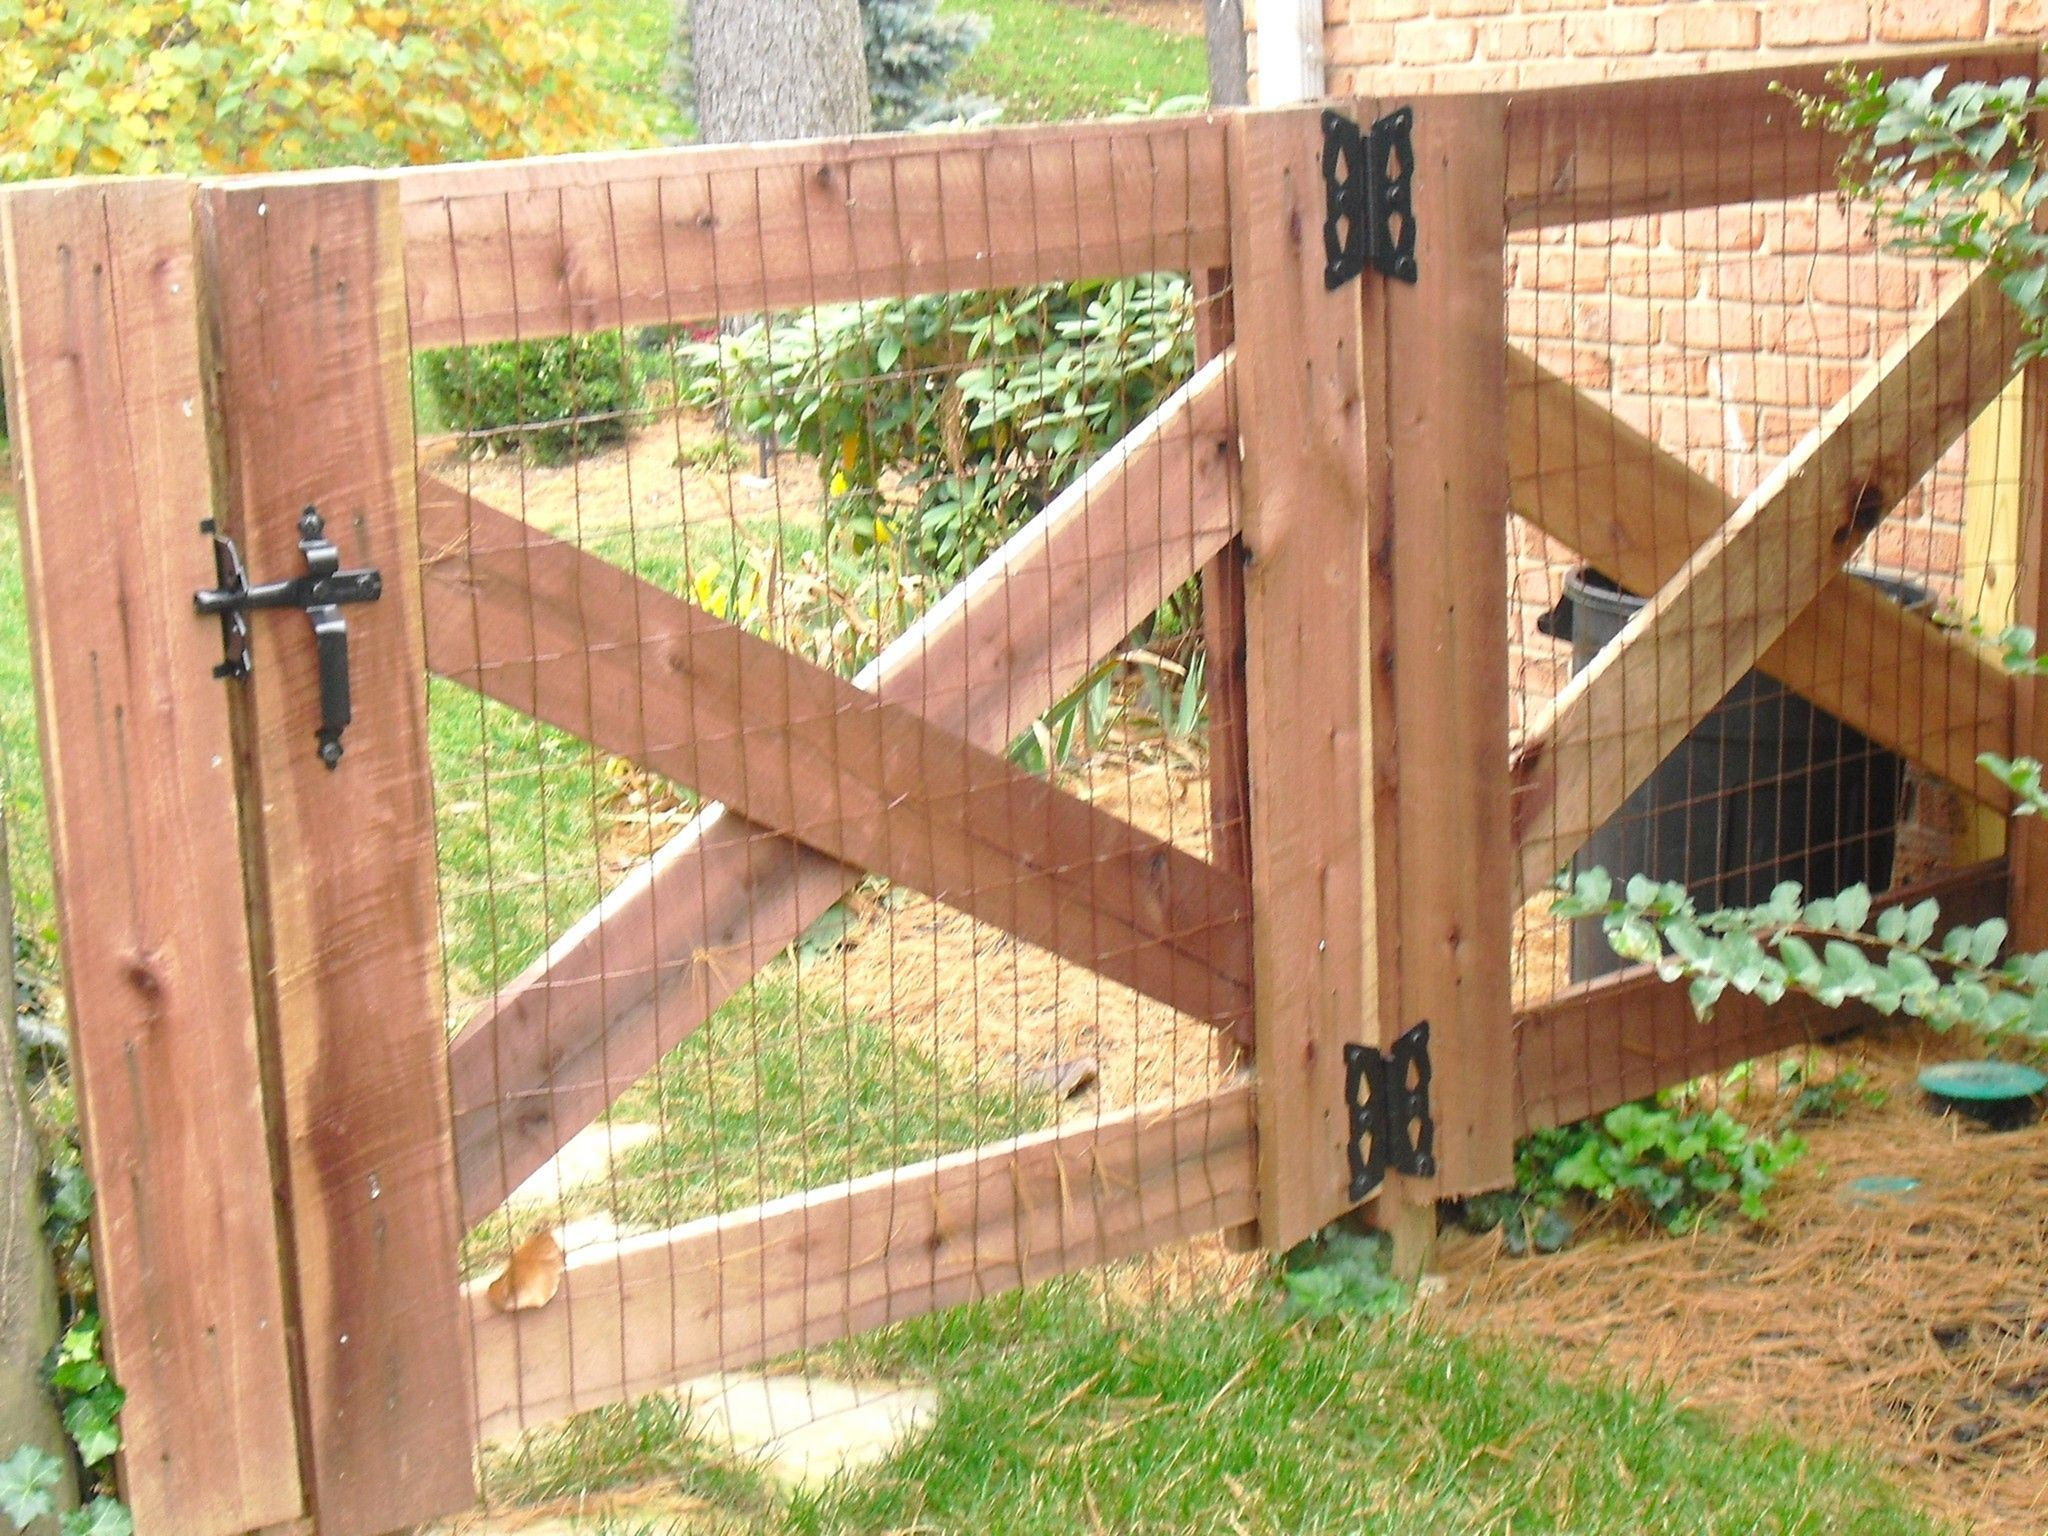 45 Easy and Safe Backyard Fence Design Ideas for Your Home ... on Uphill Backyard Ideas id=60045